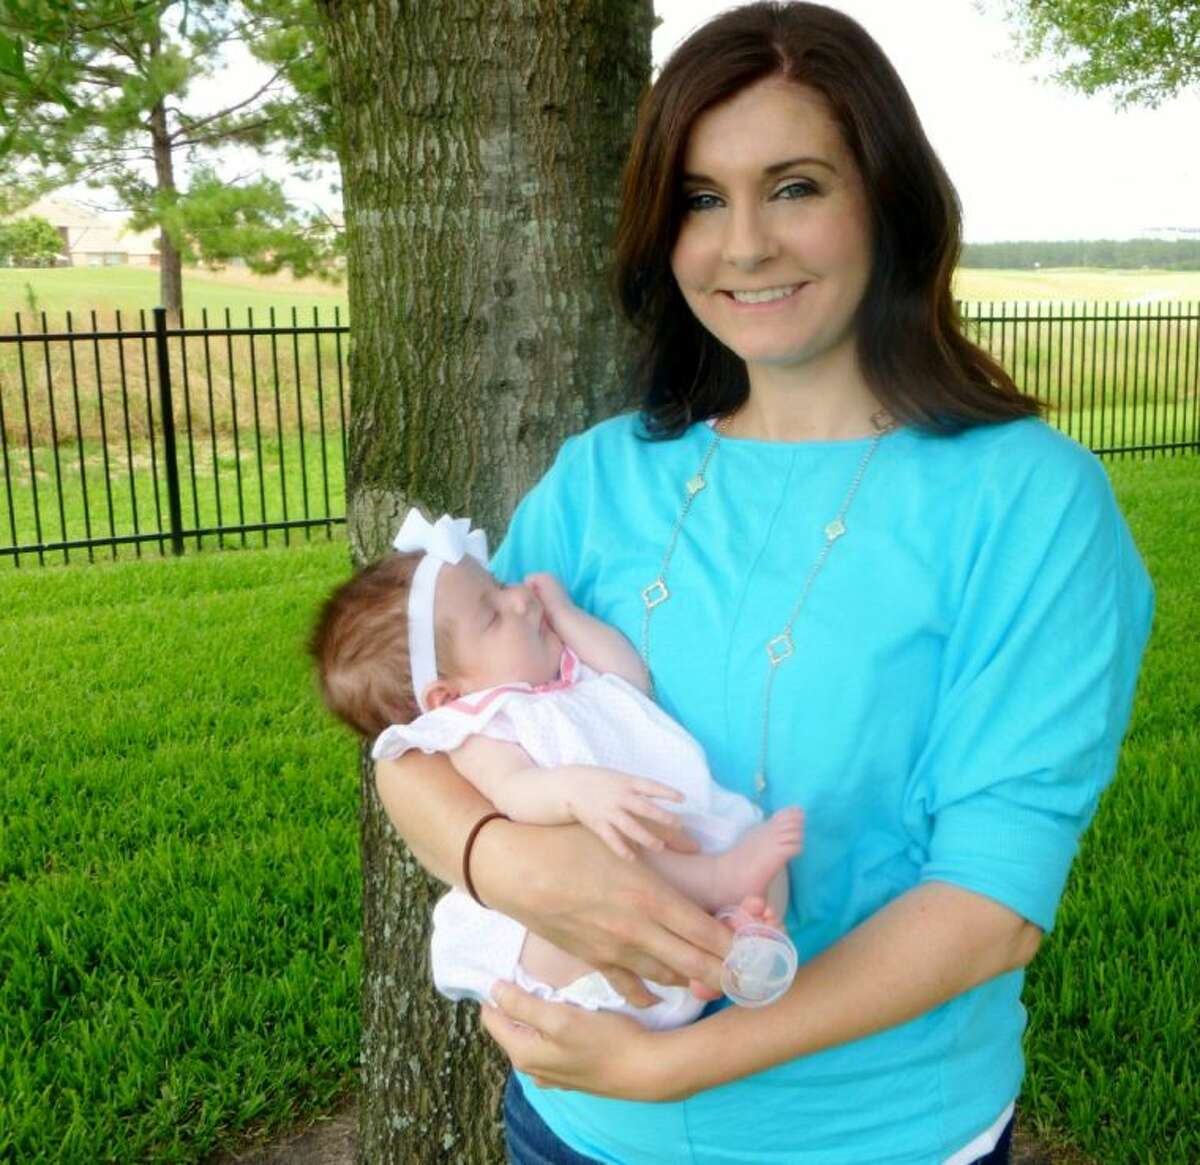 Natalie Gaudlin holds her baby, Emerson, at her home in Cypress.